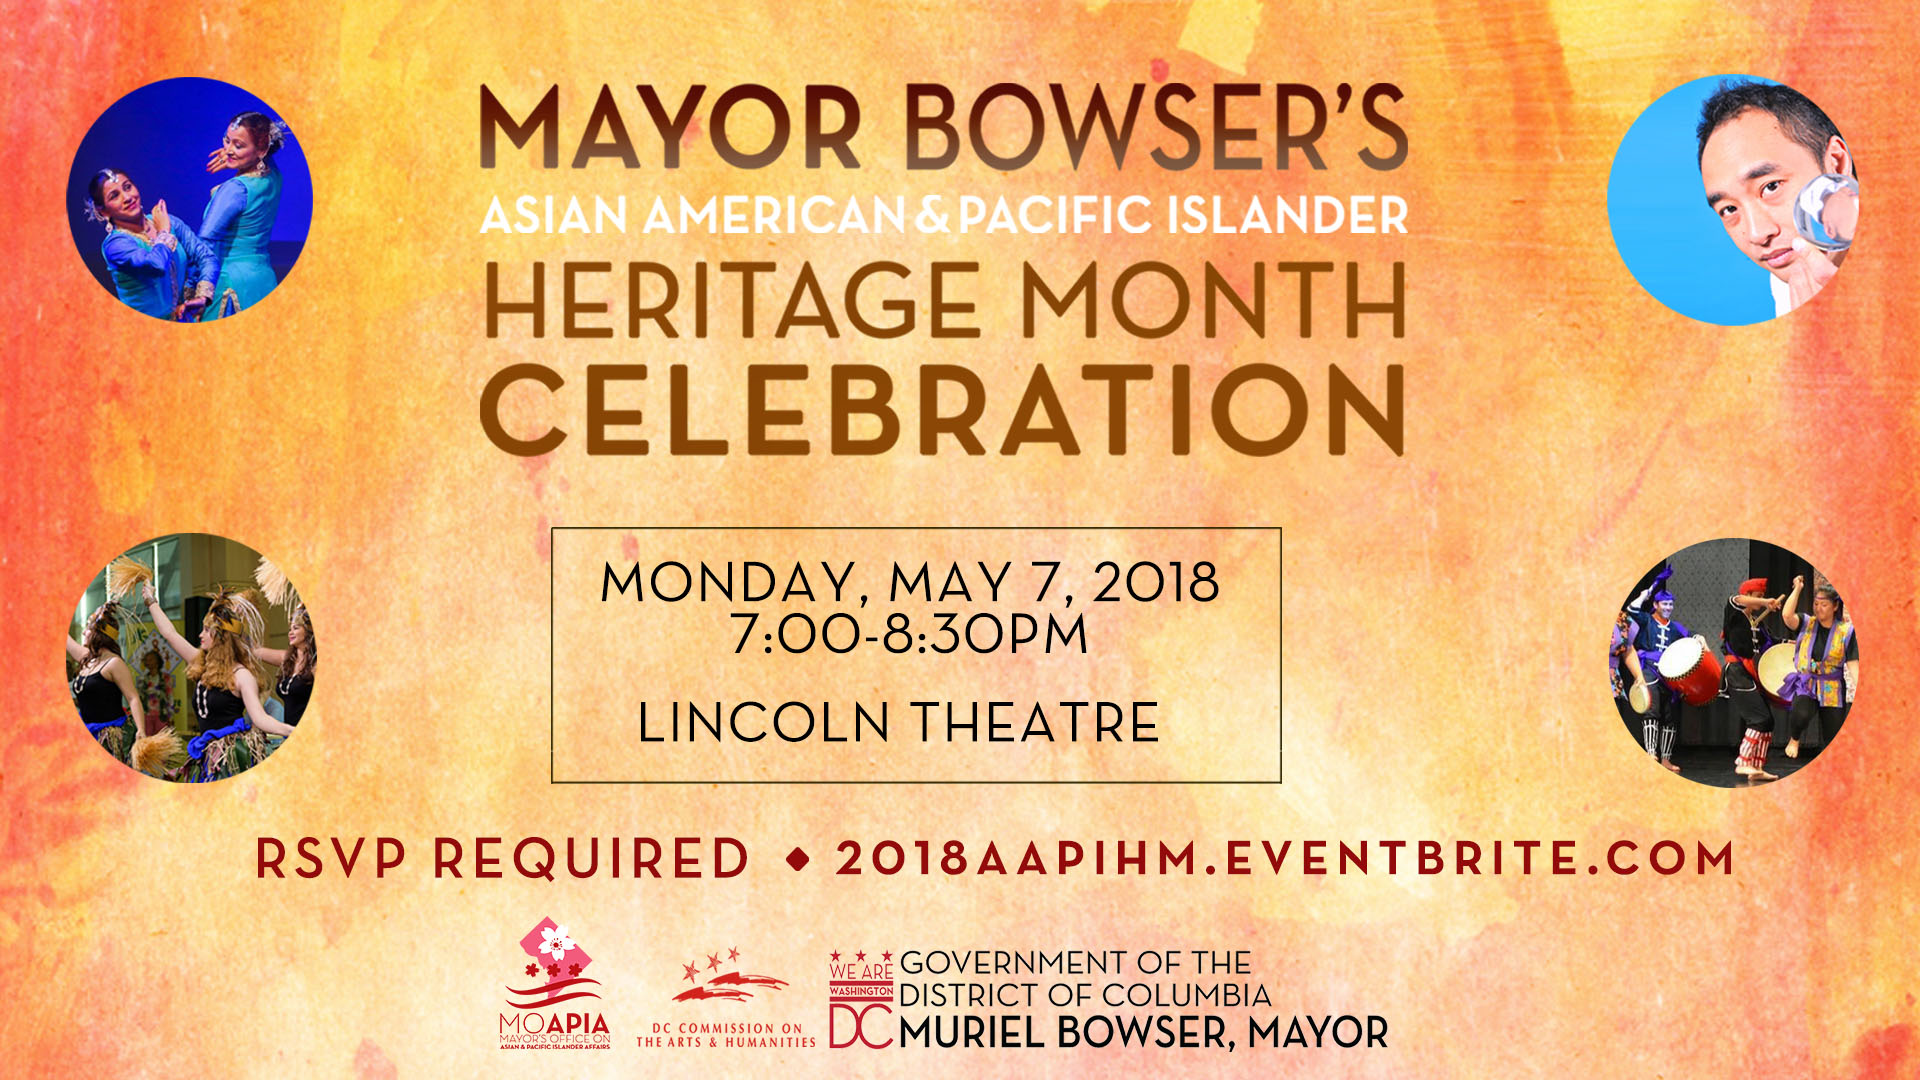 Mayor's 2018 Asian American & Pacific Islander Heritage Month Celebration